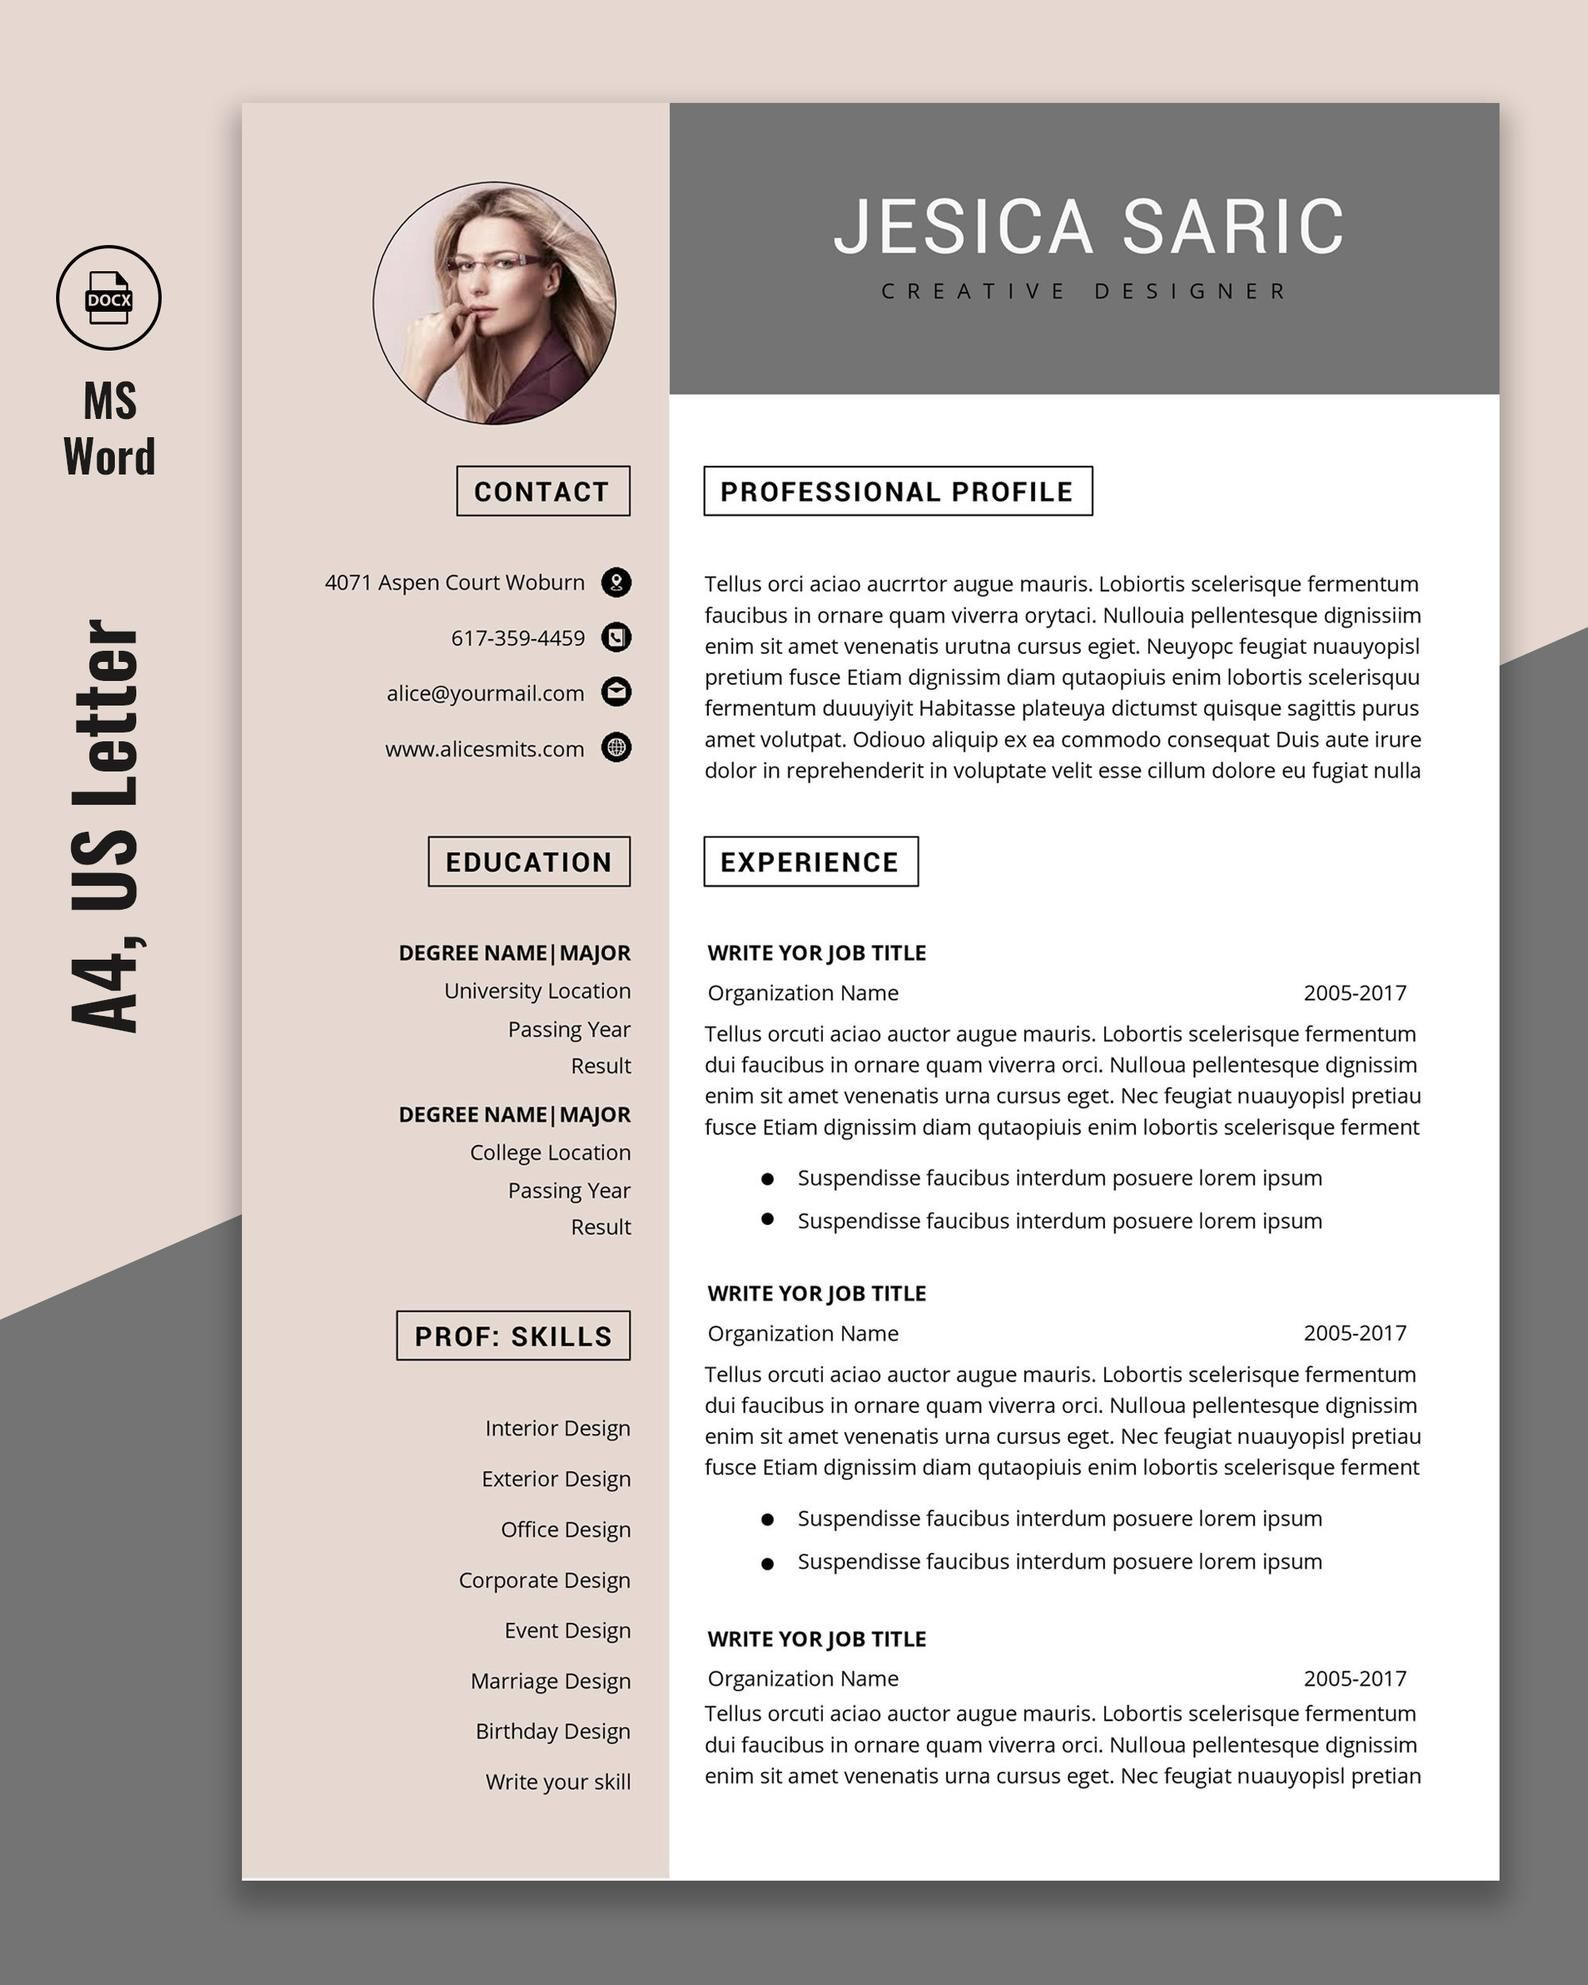 Professional Resume Template Instant Download 3 Page Resume Etsy In 2020 Resume Template Professional Resume Template Resume Template Word